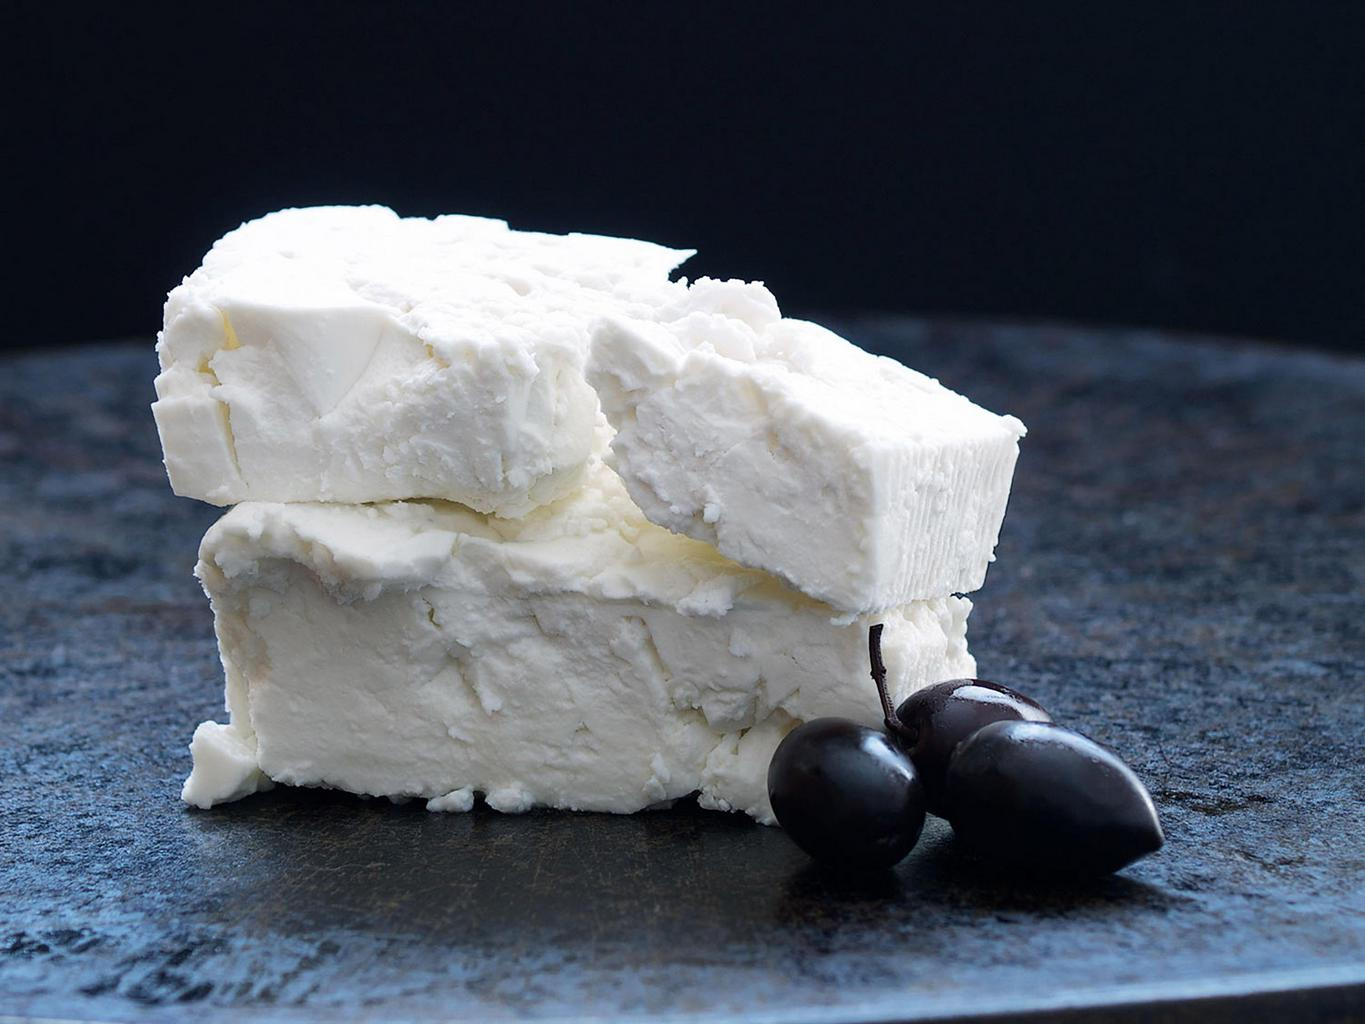 Food photography of feta